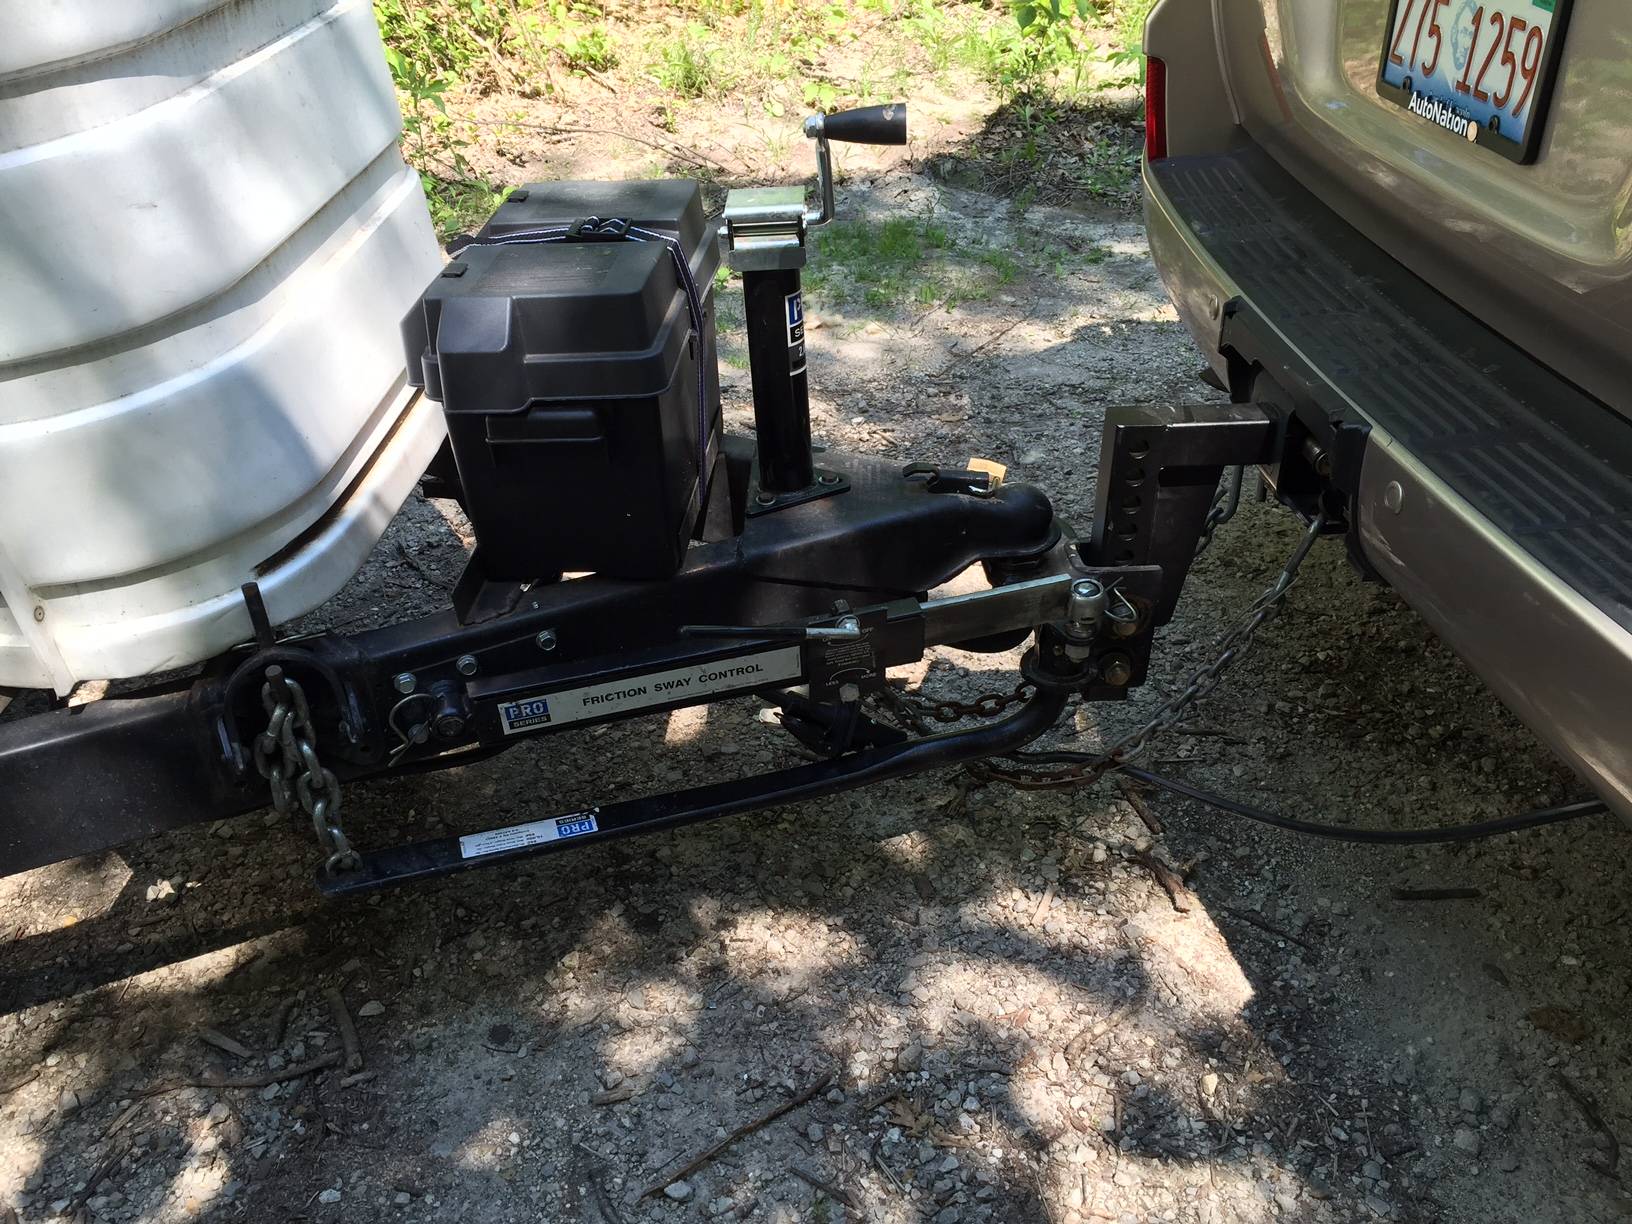 When I moved the Pro Series WD setup to the Land Cruiser, I discovered that  the trailer was not level (nose-up by several inches).